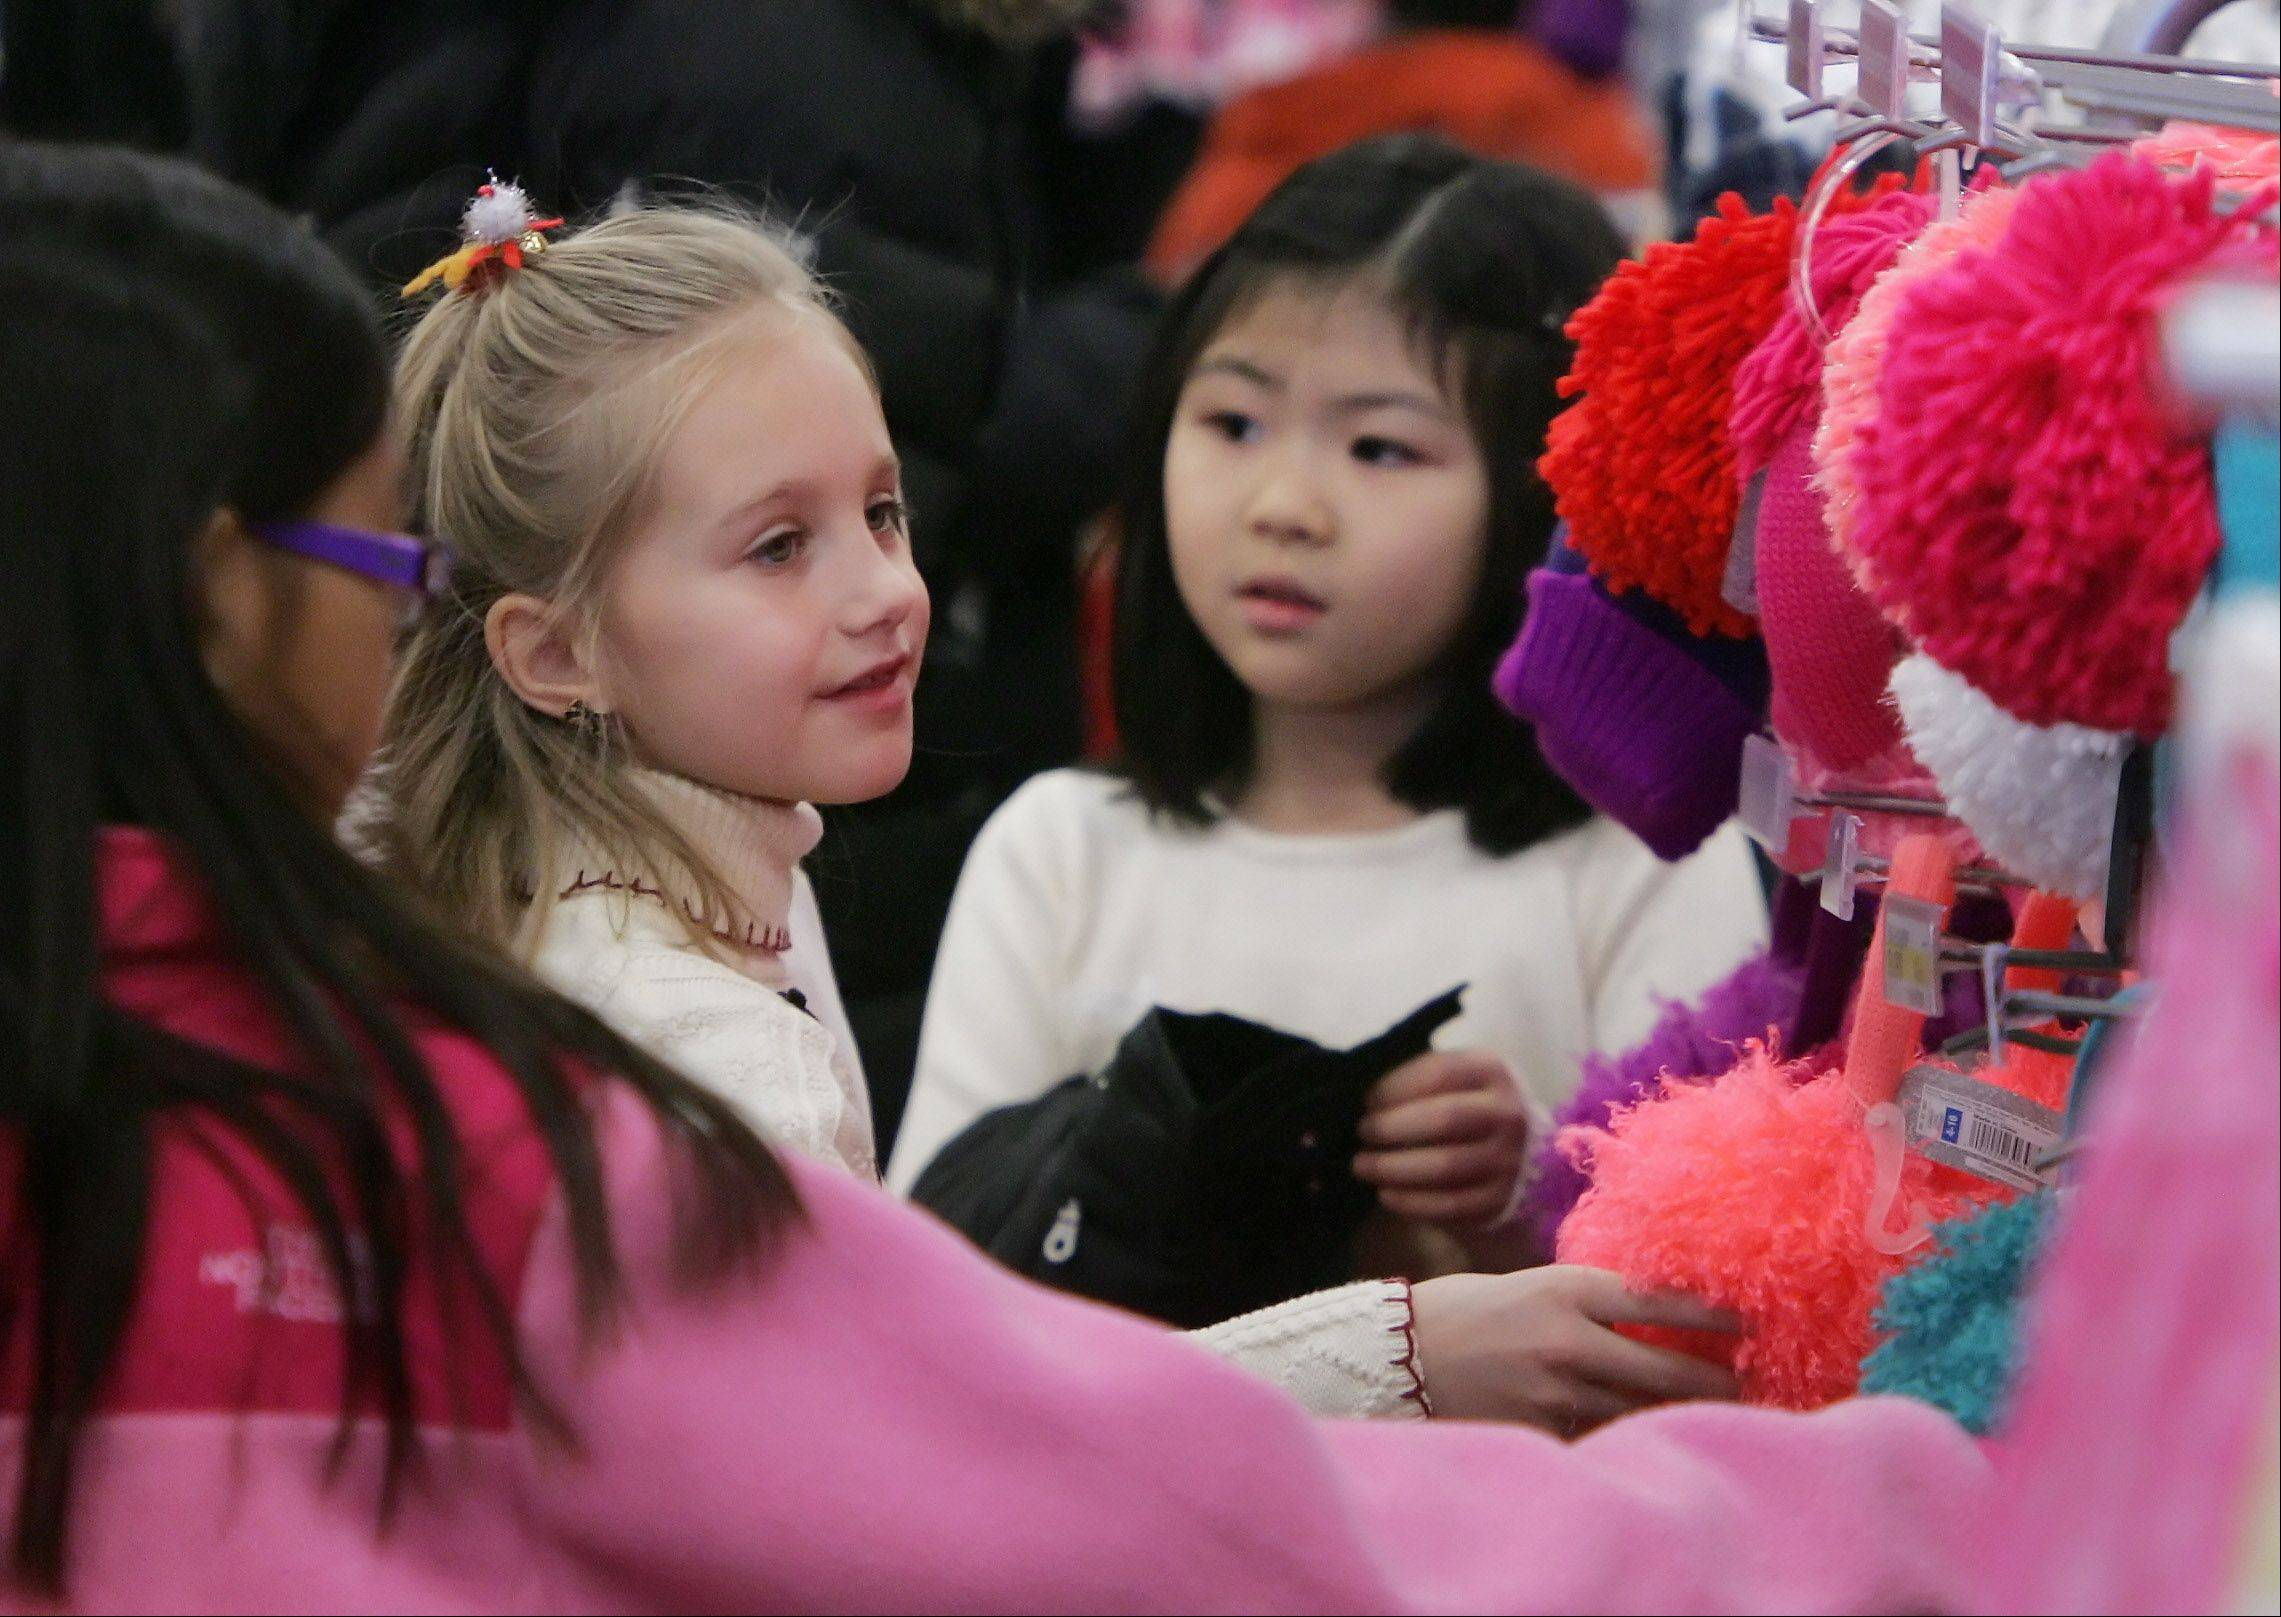 Fremont School third-graders Jordi Landry, left, and Grace Kim look at clothing accessories as students shop for clothes and toys Wednesday at Target in Mundelein to help needy families for the holidays. The event was part of the school's Sponsor A Family program, which helps provide gifts for 30 children.